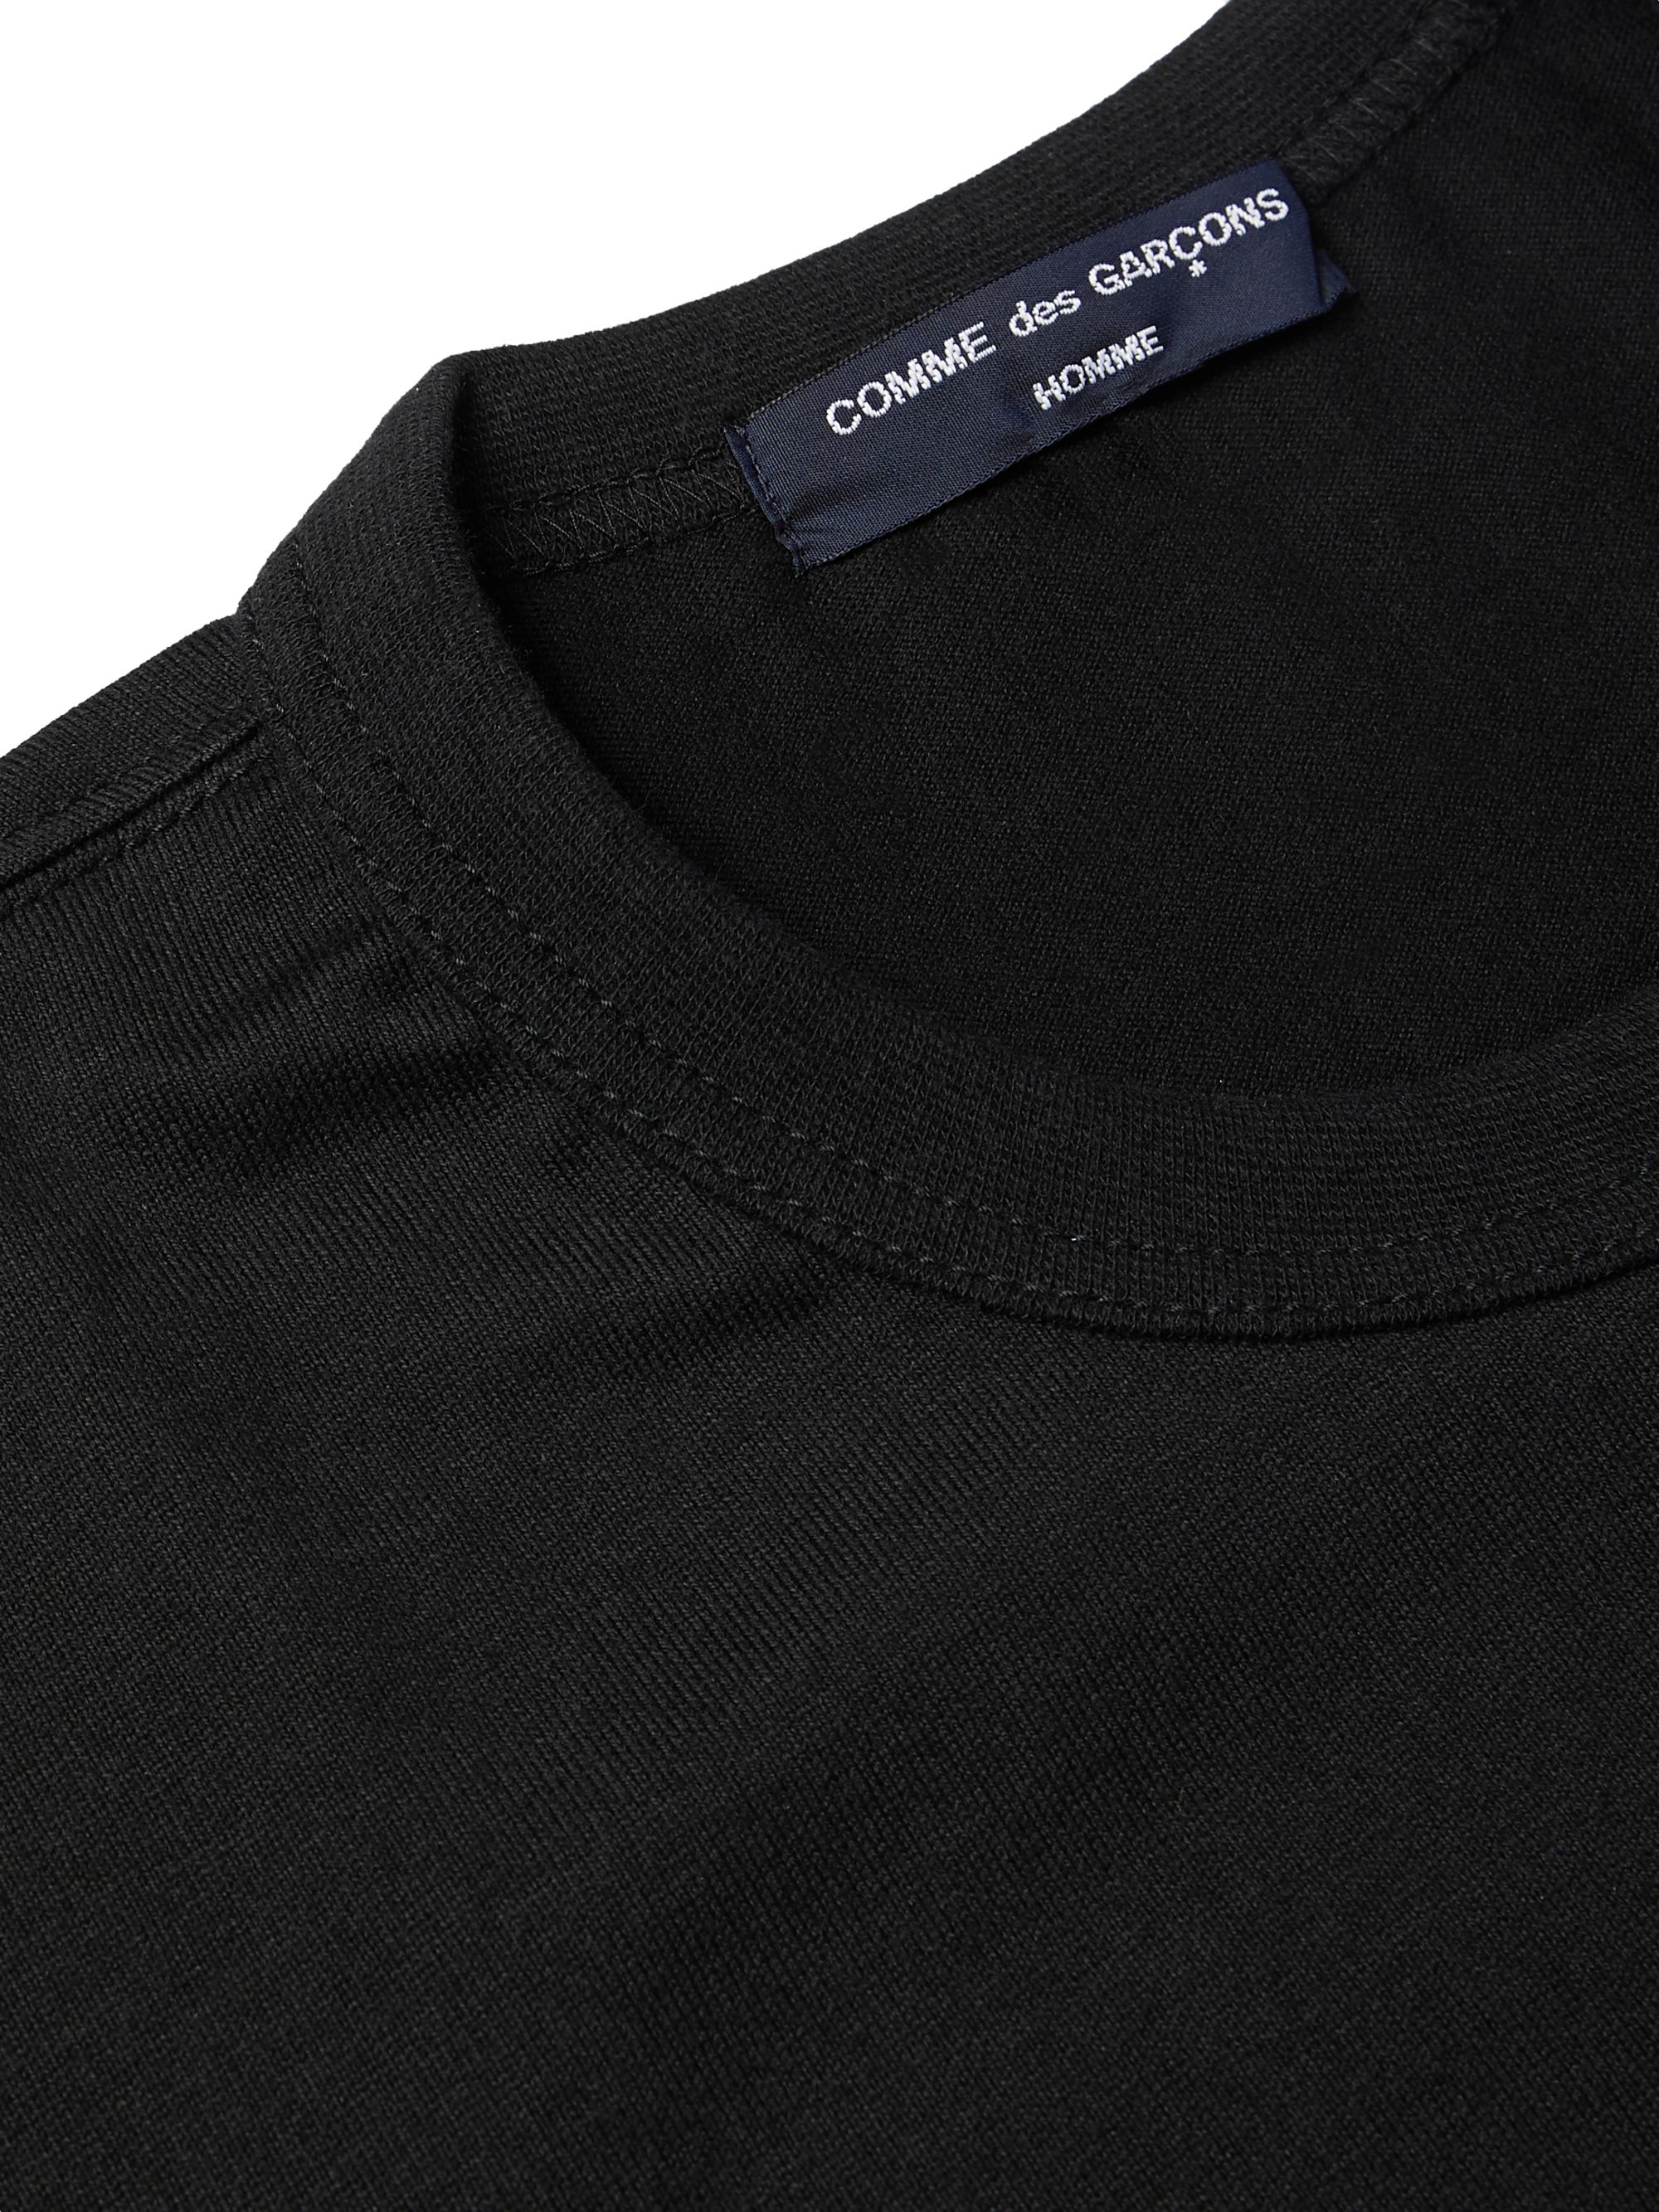 Comme des Garçons HOMME Printed Shell and Cotton-Jersey T-Shirt